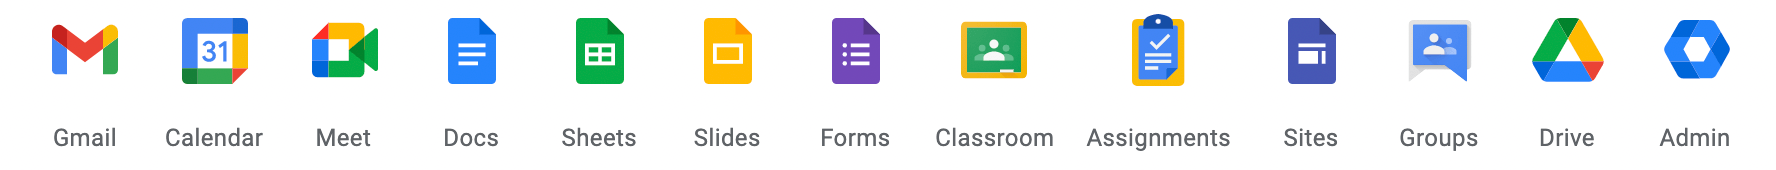 google-workspace-for-education-main-features